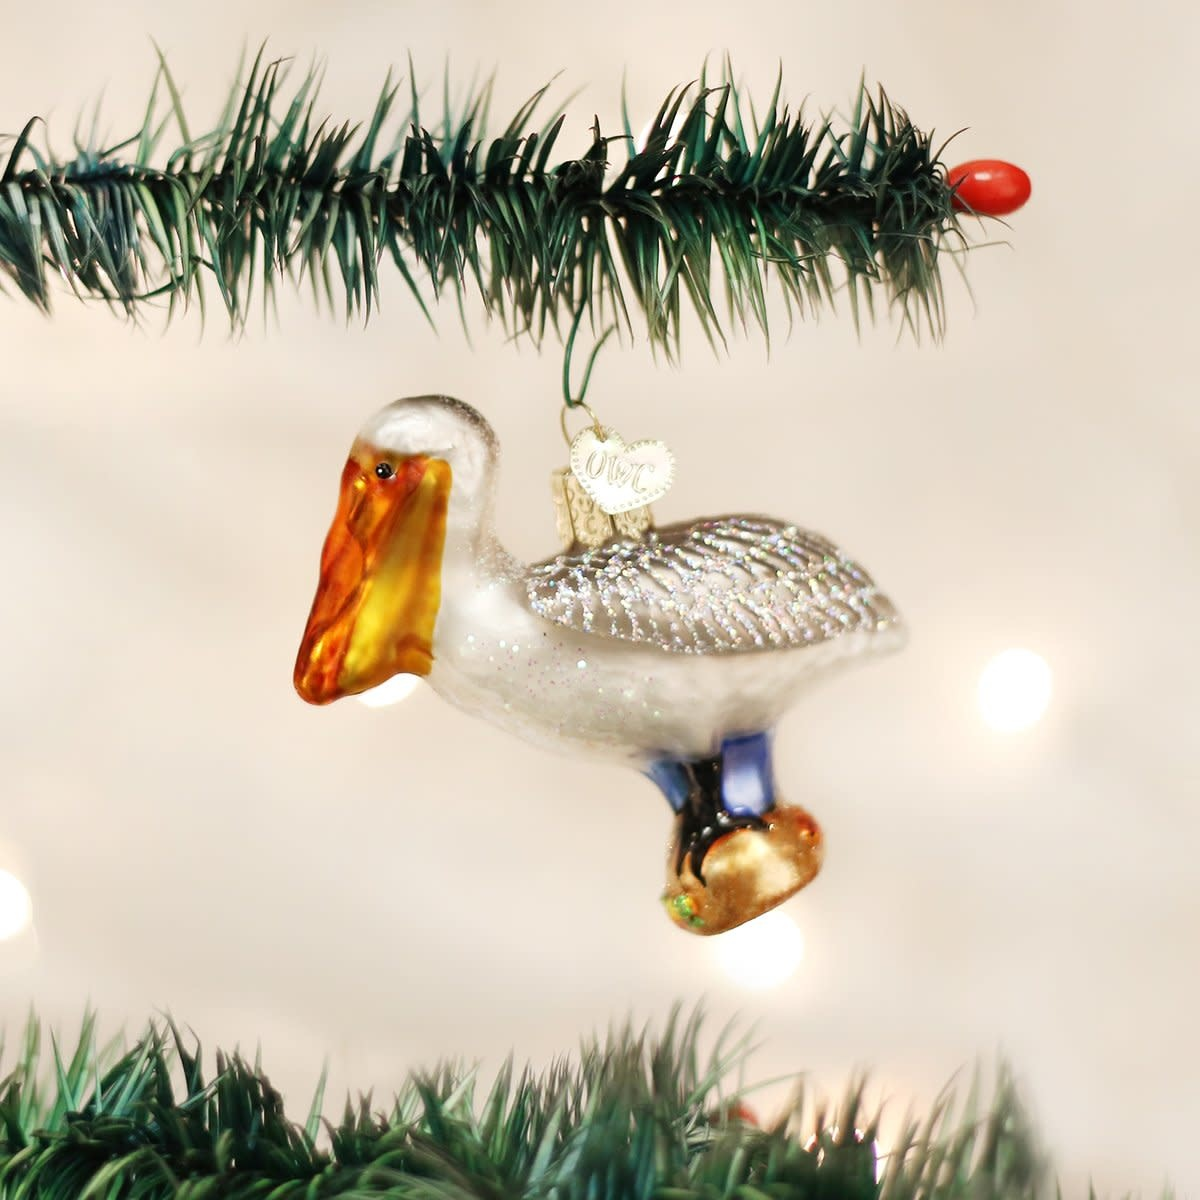 Old World Christmas OWC Pelican Ornament